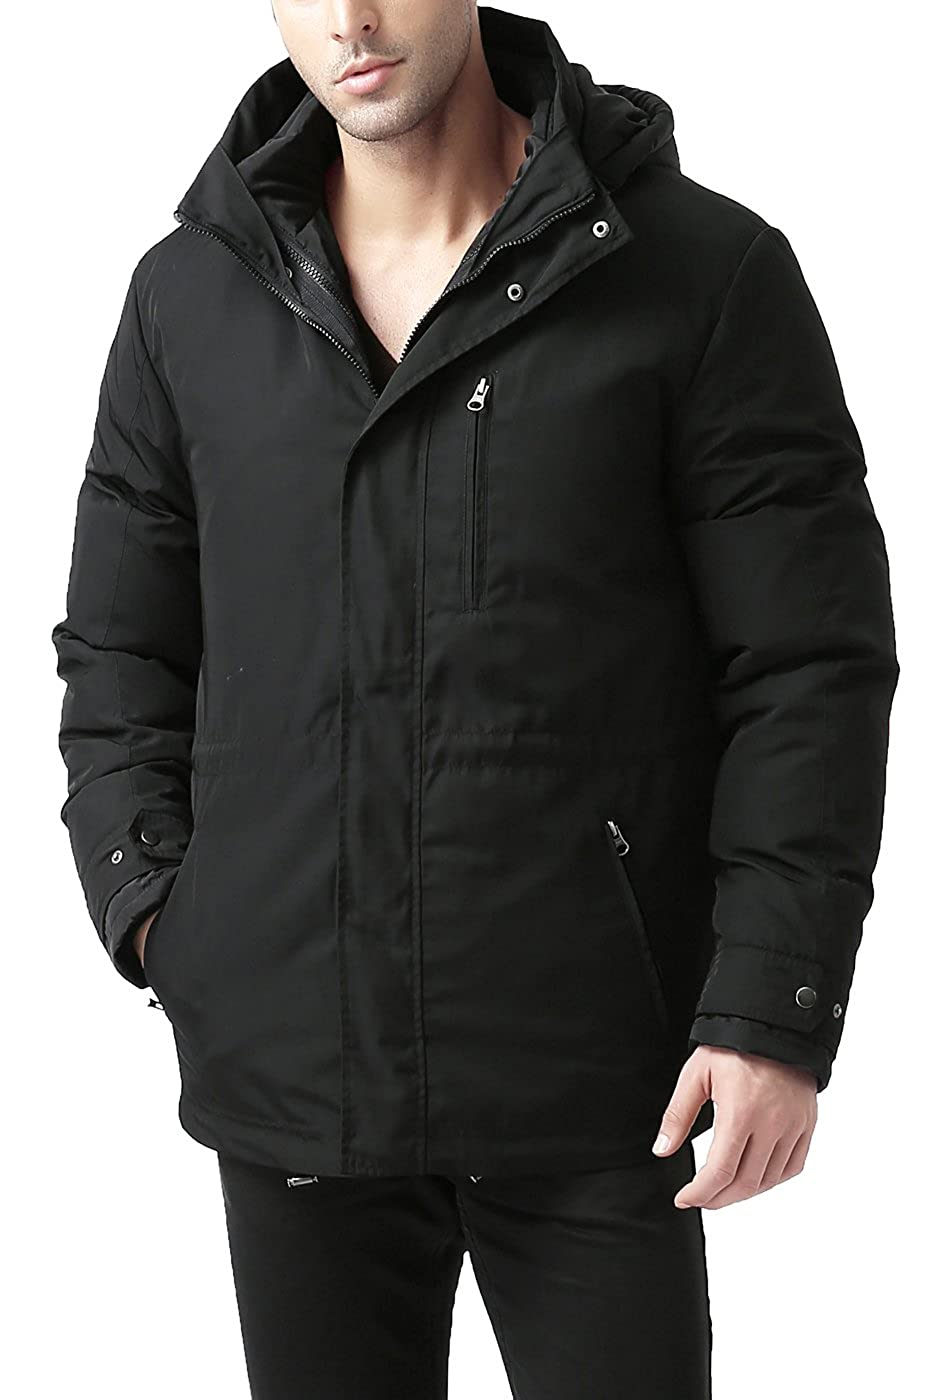 8c0eedfa05b3 Black BGSD BGSD BGSD Men's James 3-in-1 Waterproof Down Parka Coat 7becab